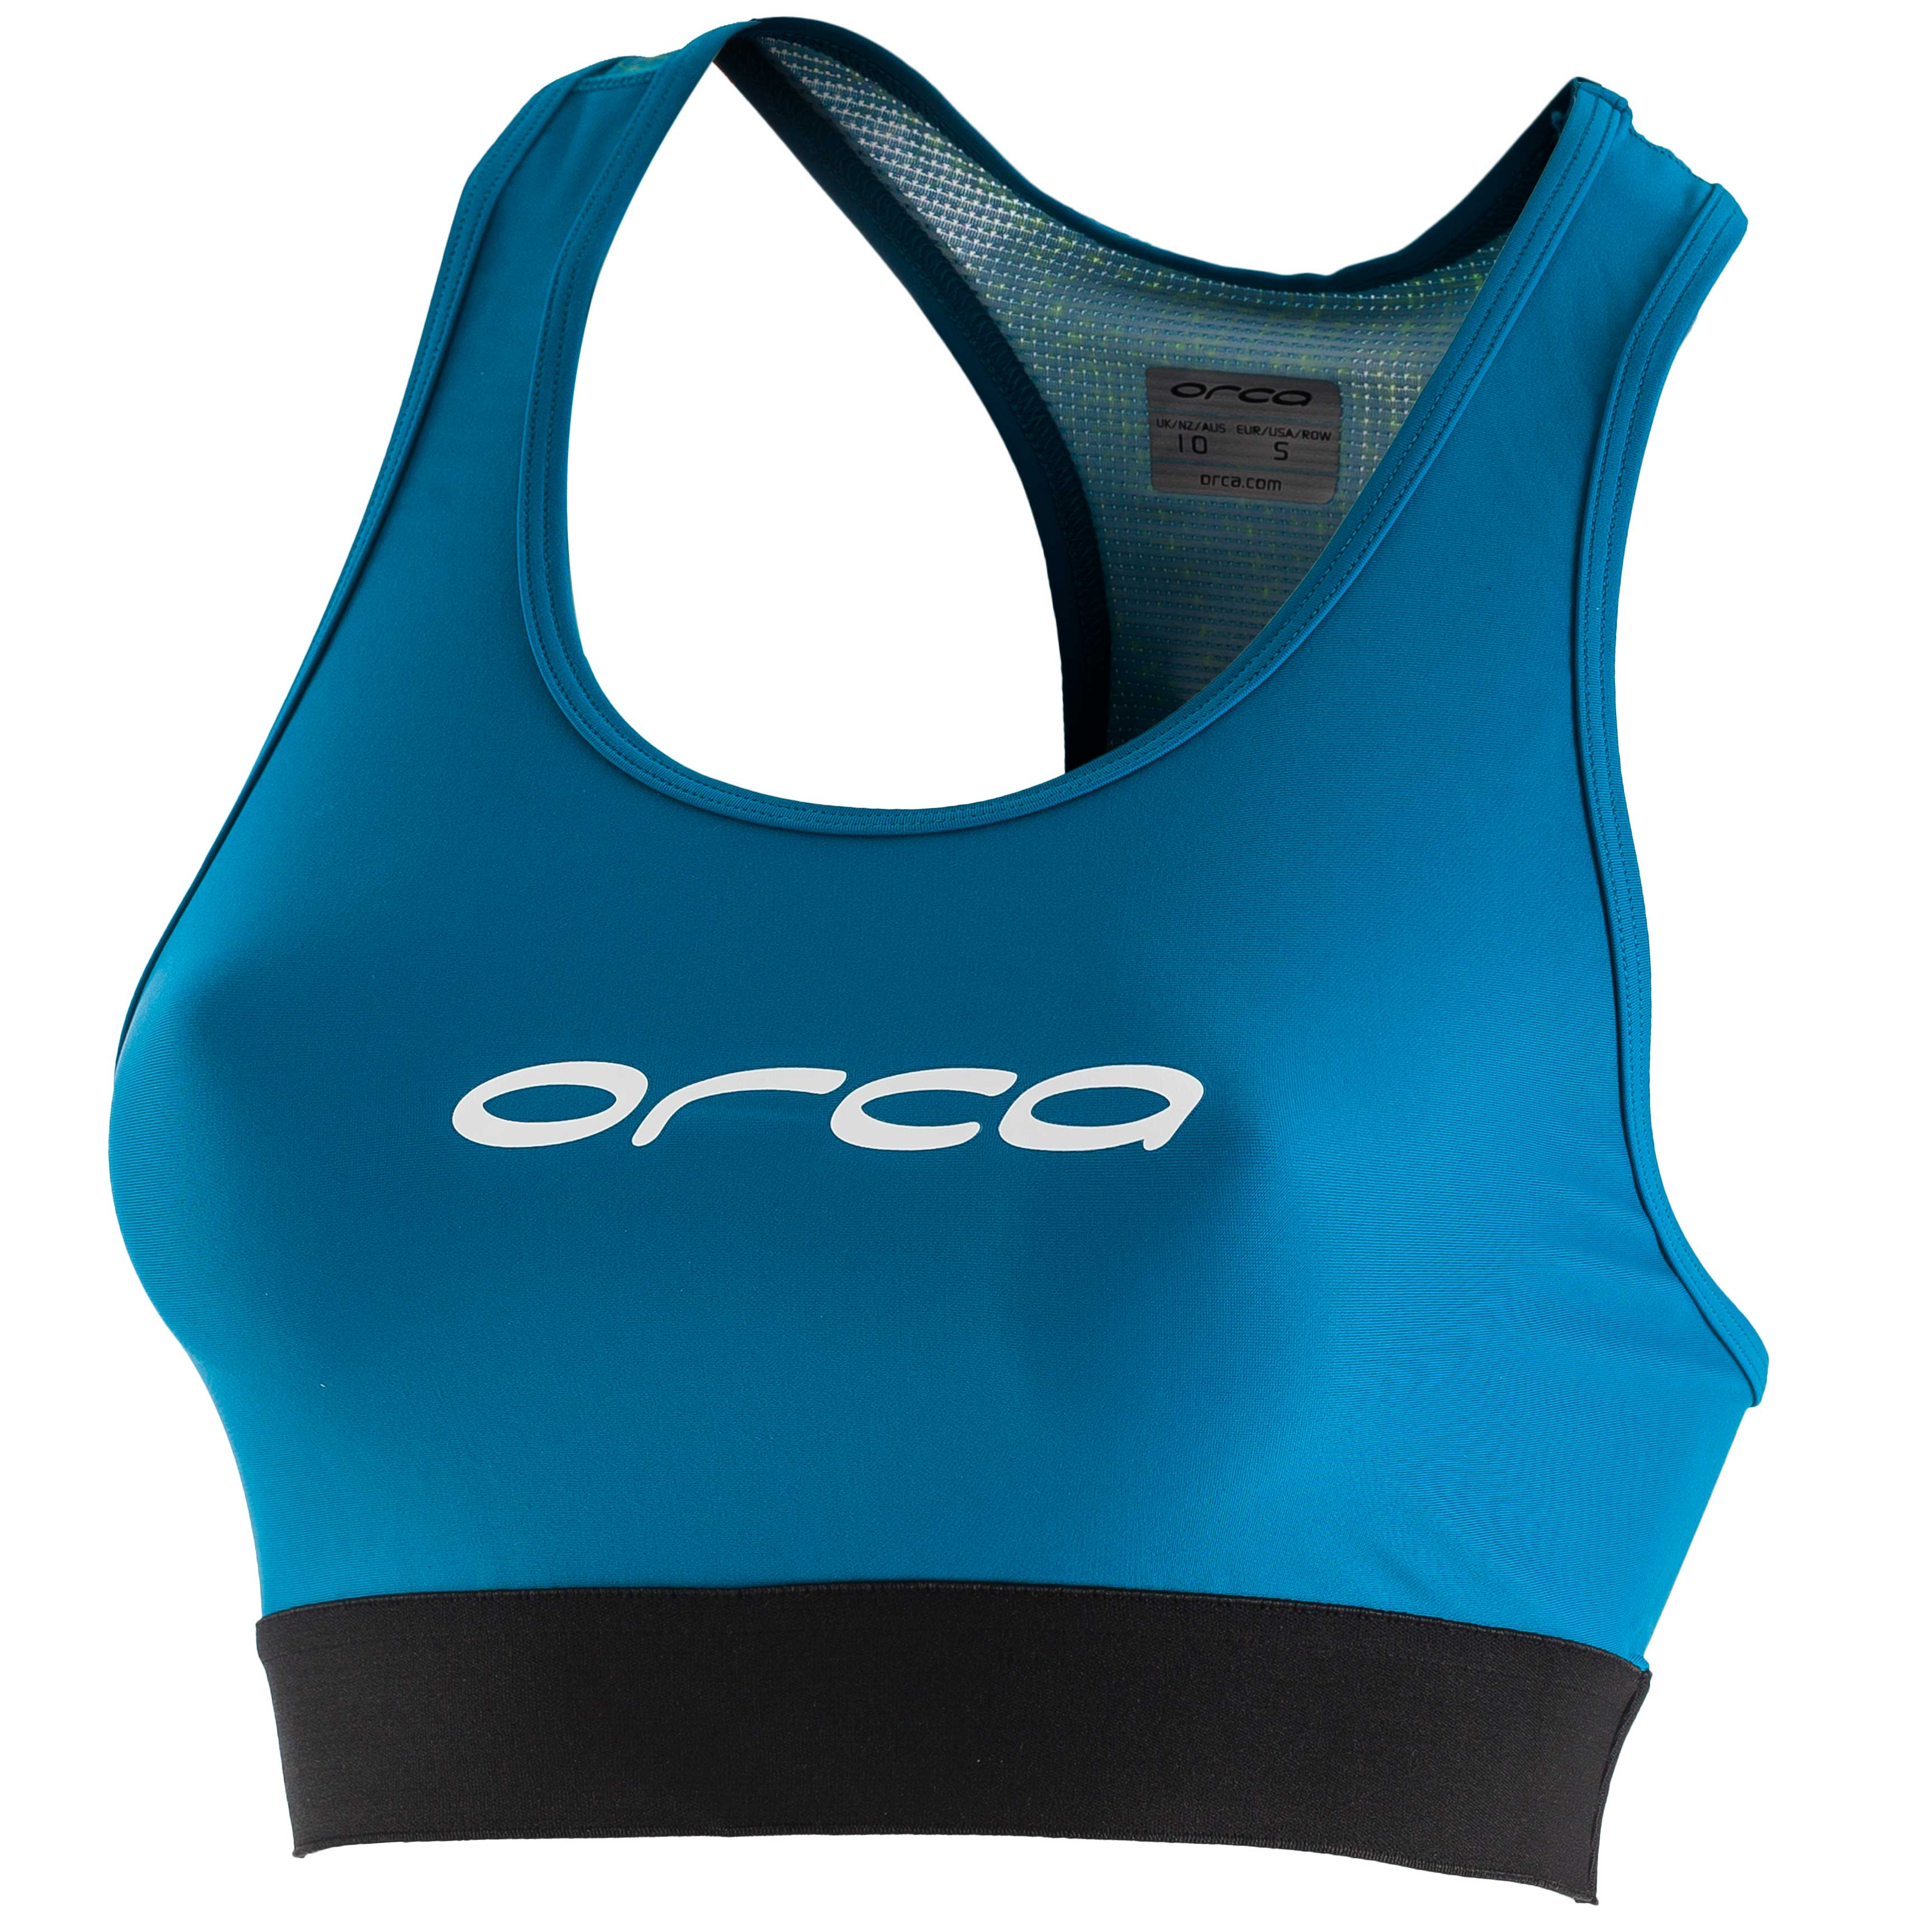 Orca Women's Support Sports Bra